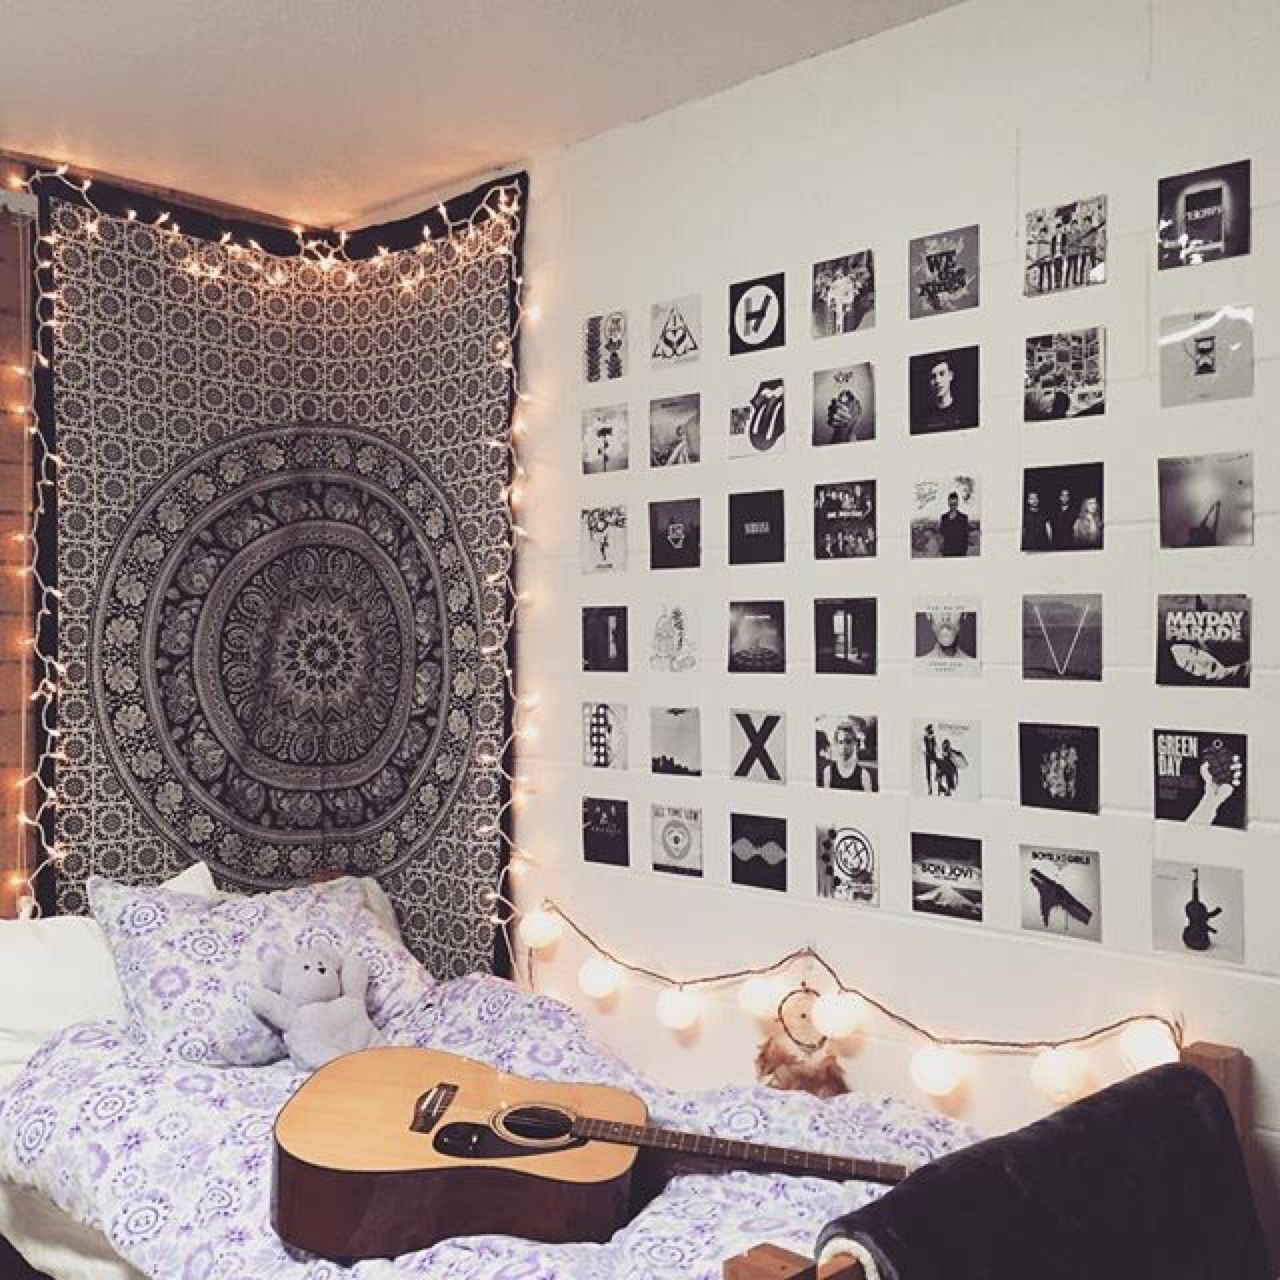 source myroomspo tapestry bedroom tumblr bedroom decoration room decor diy room inspiration poster lights fairy lights - Indie Bedroom Decor